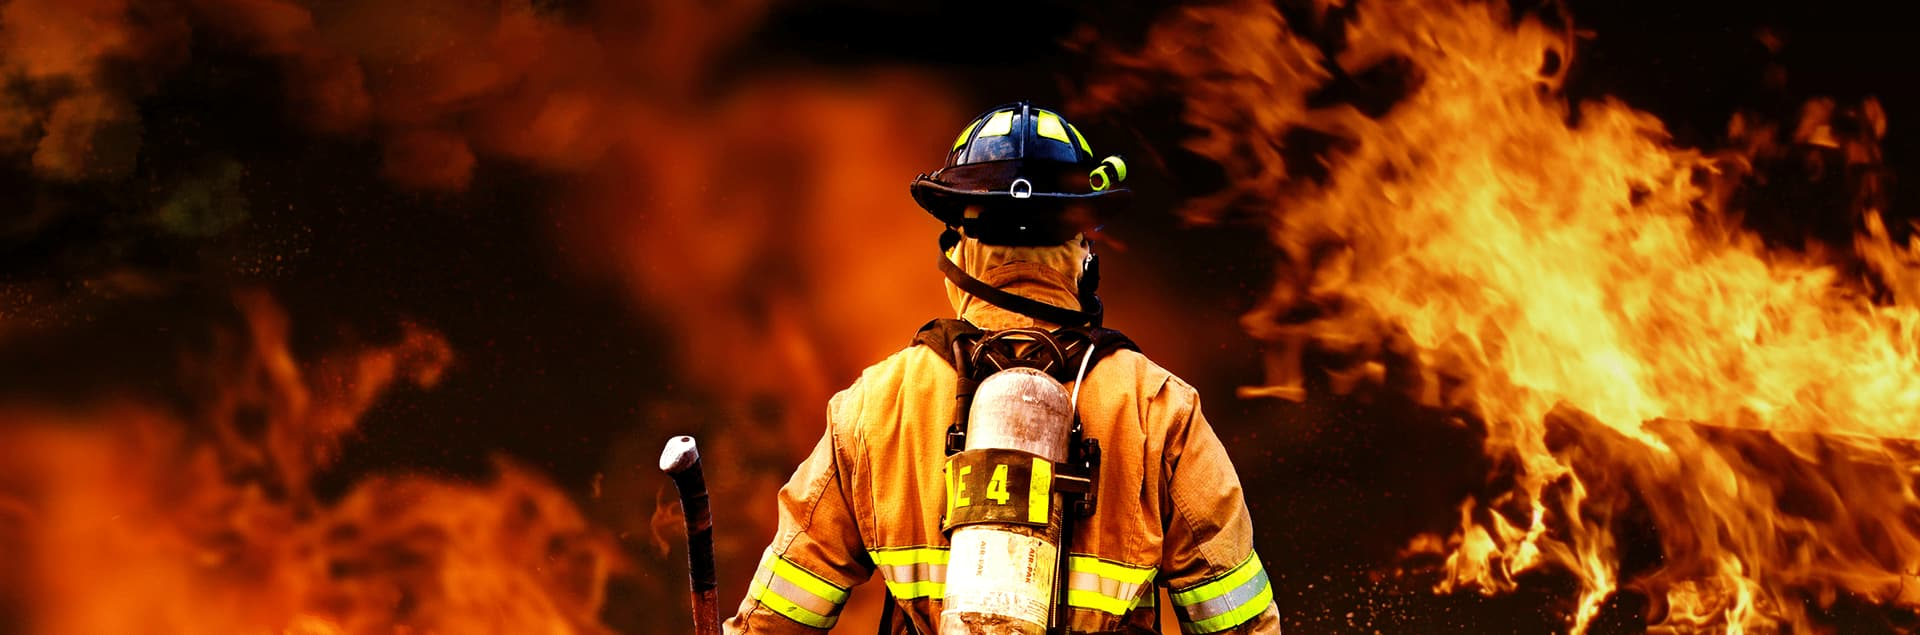 Firefighter standing in front of a wall of flames